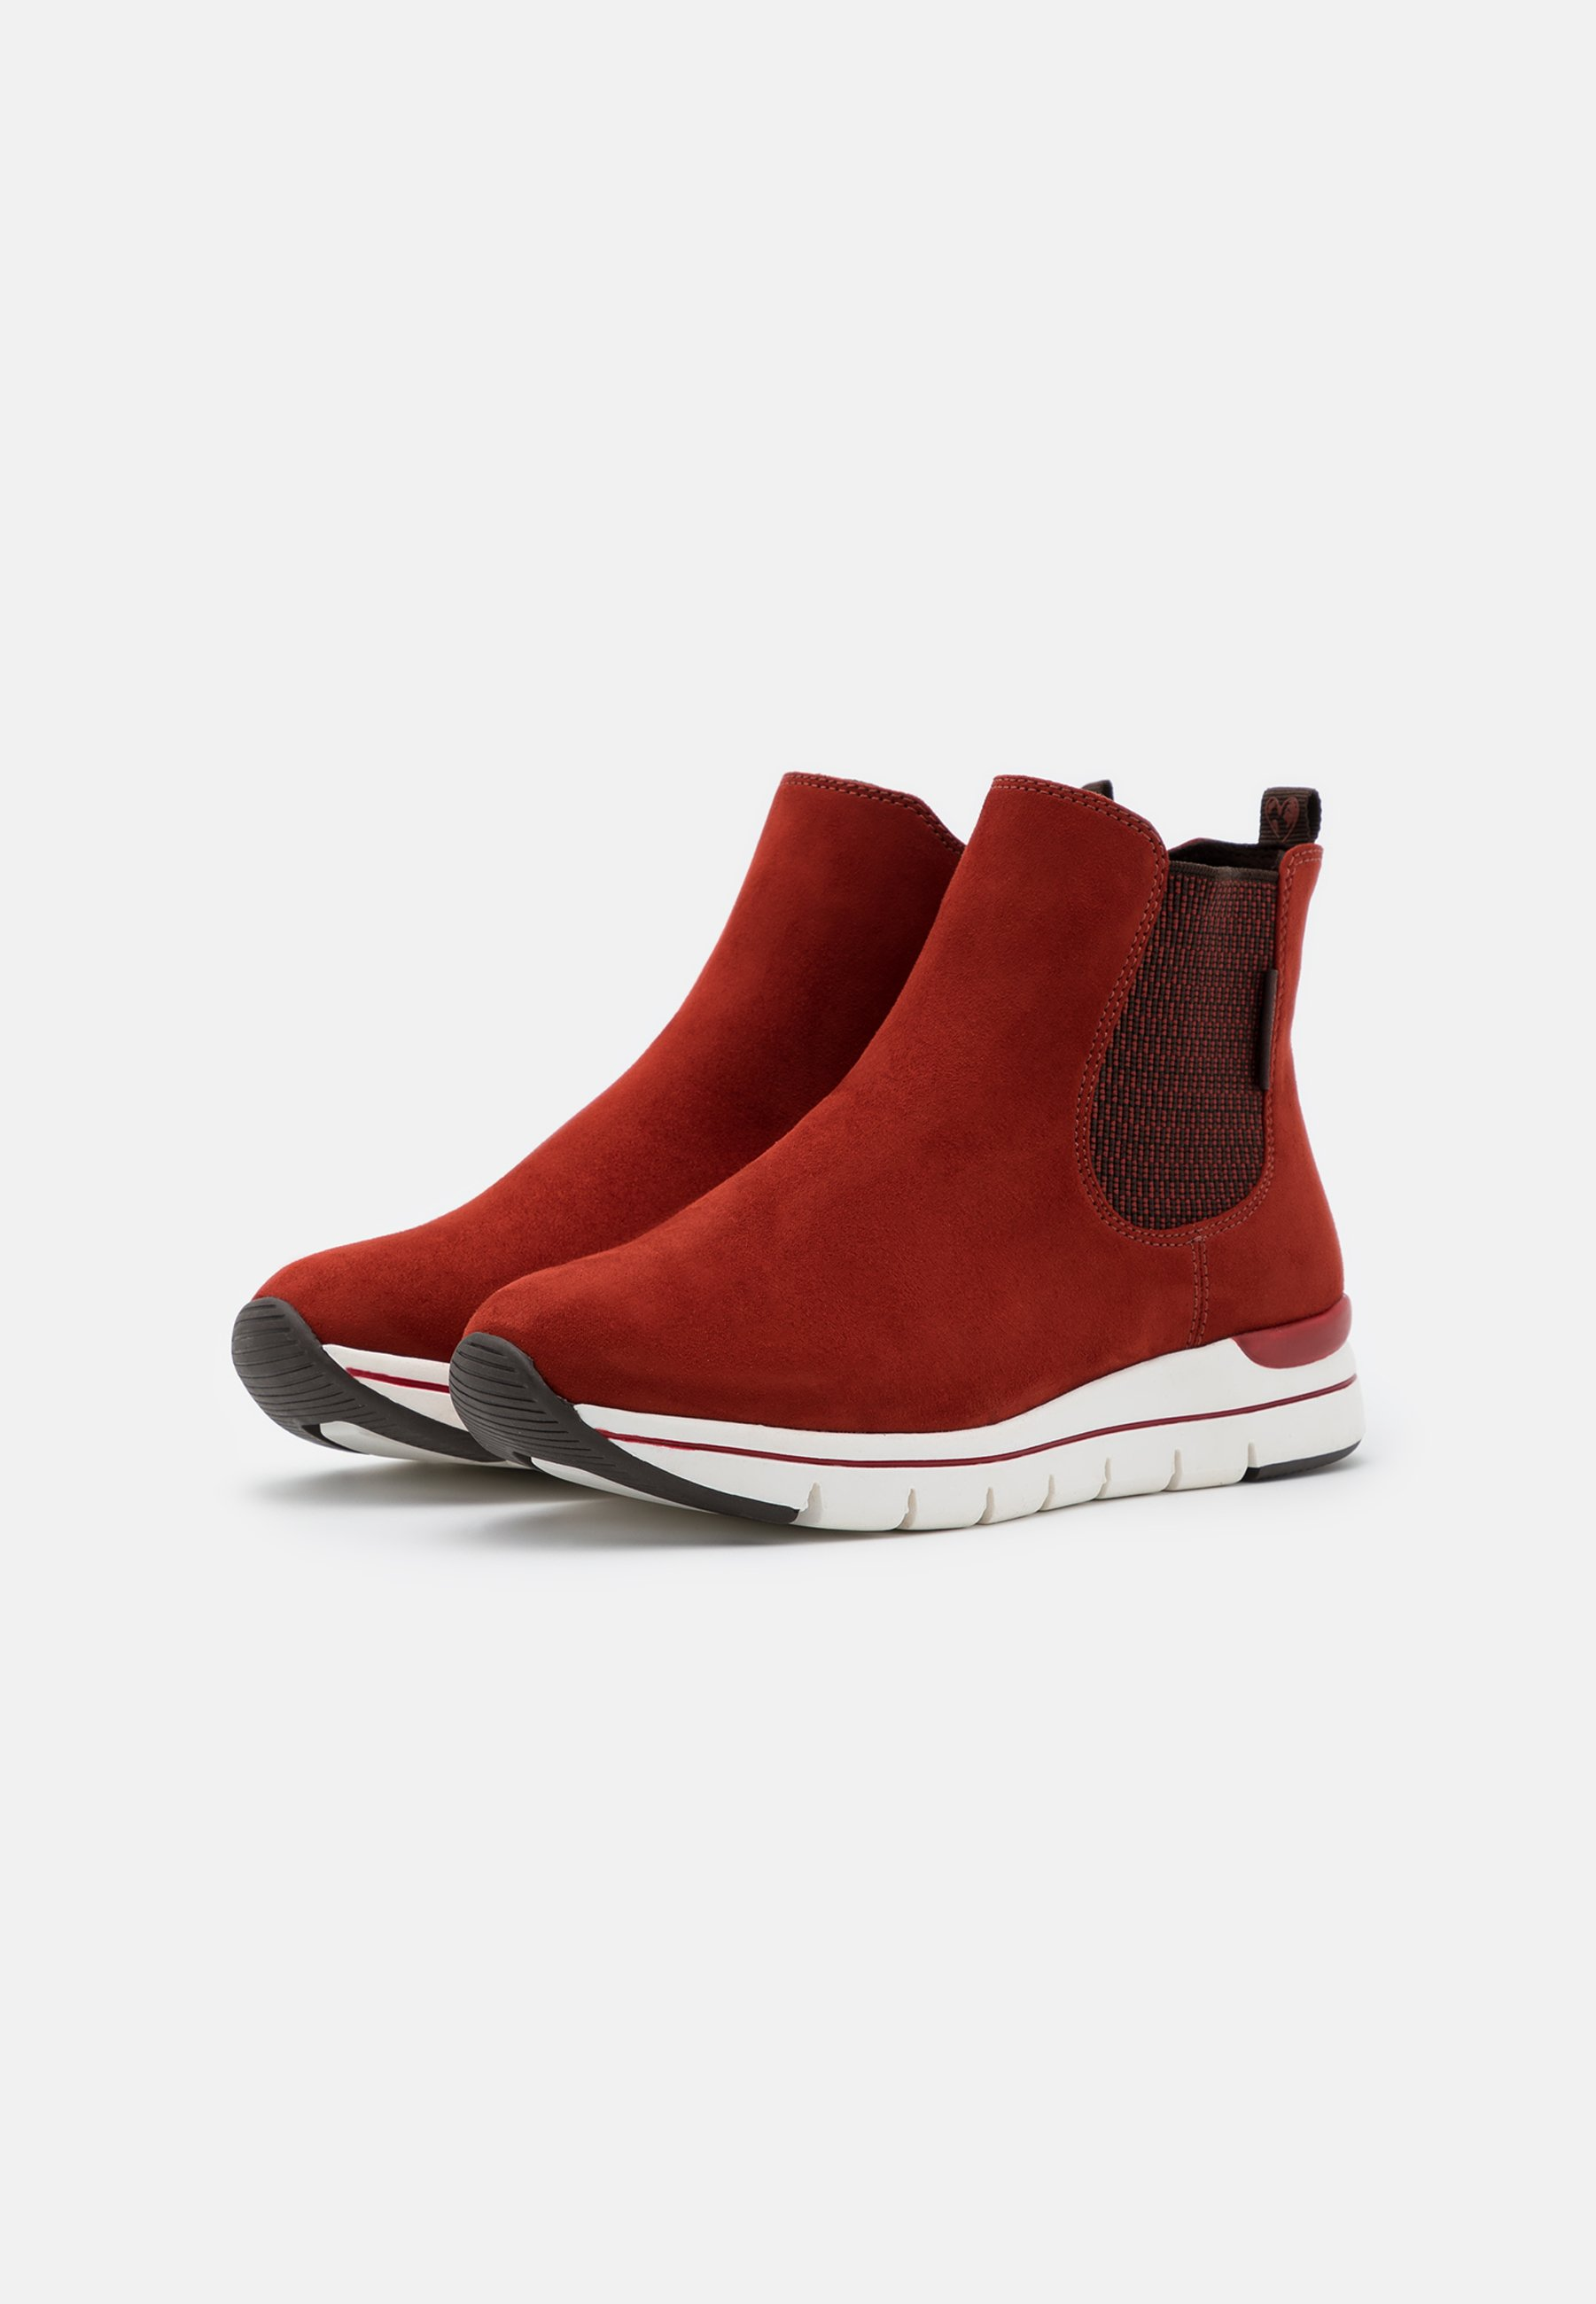 LOVE OUR PLANET by MARCO TOZZI BOOTS Nilkkurit brick